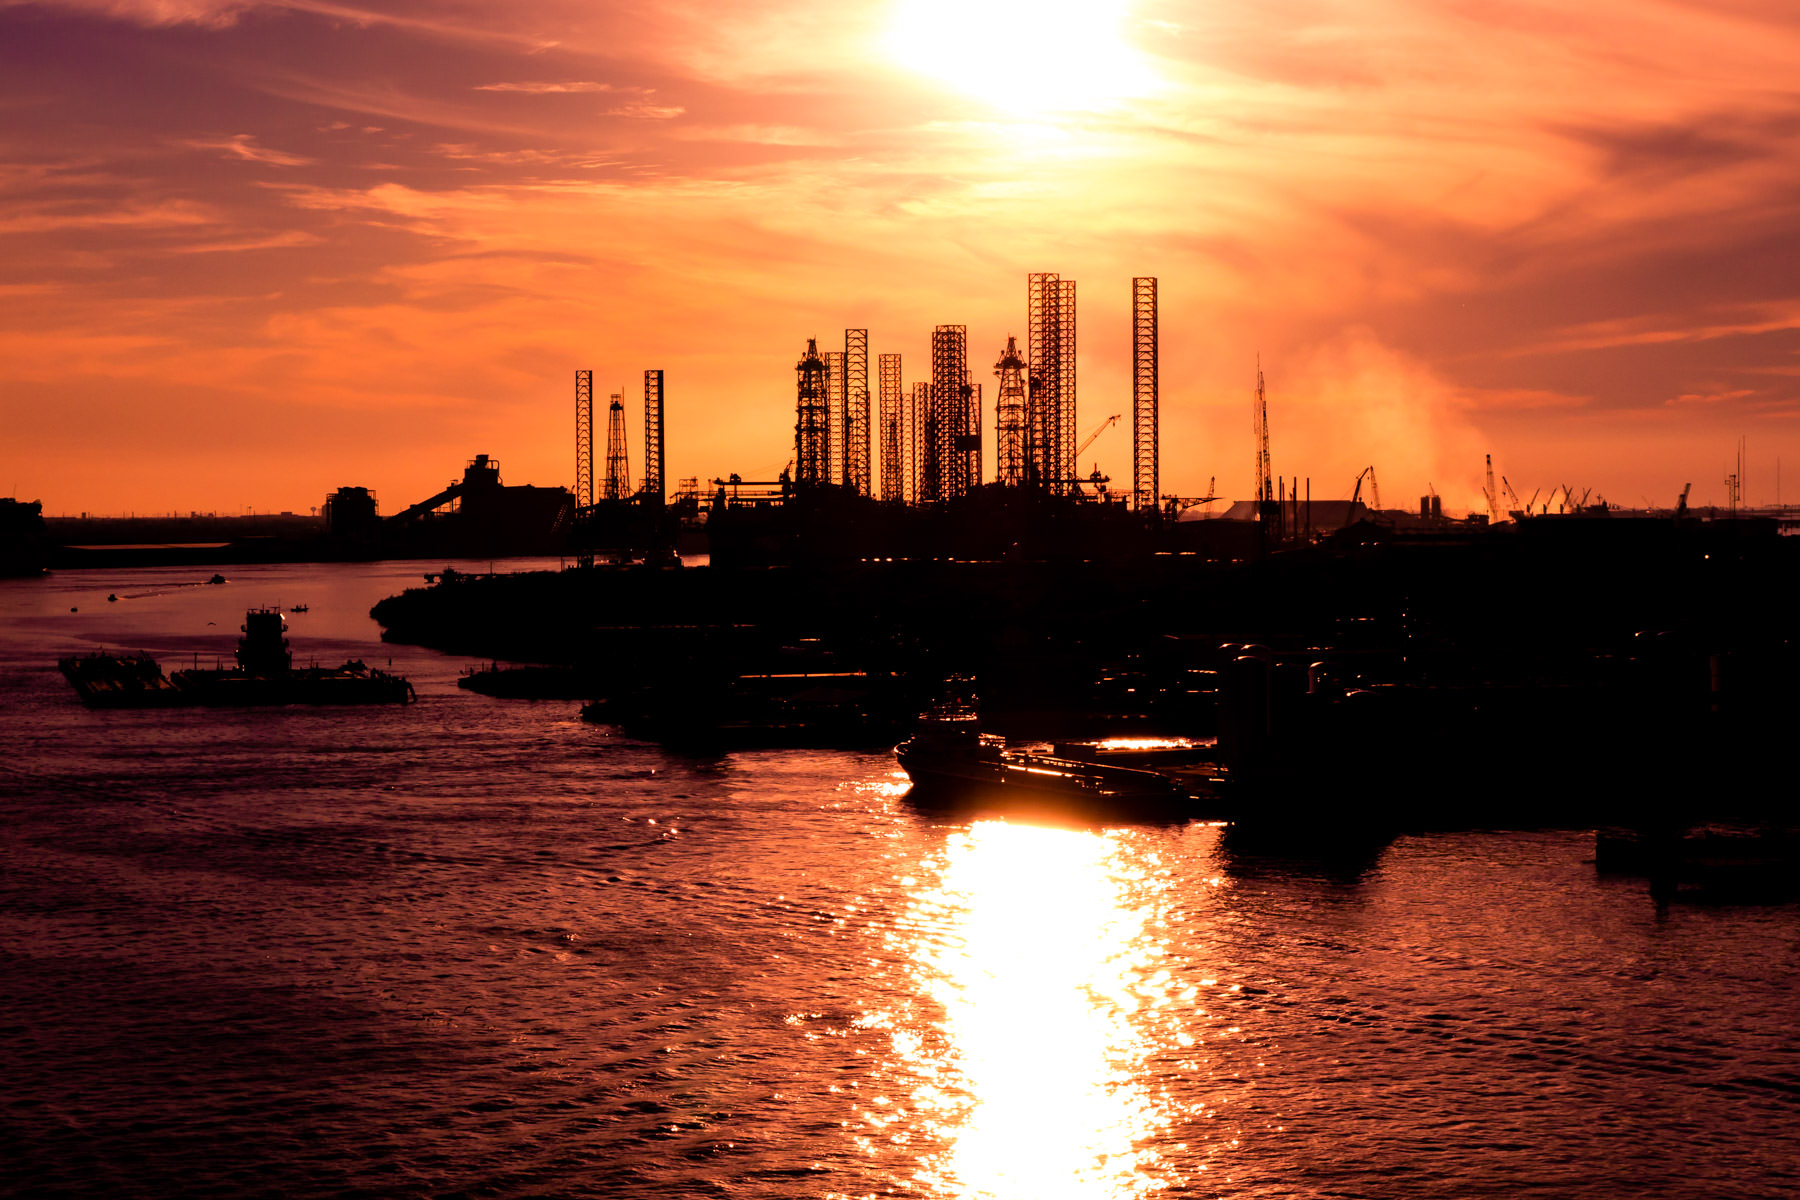 Steel legs on jack-up oil platforms in storage at Pelican Island rise into the sky as the sun begins to set on Galveston, Texas.